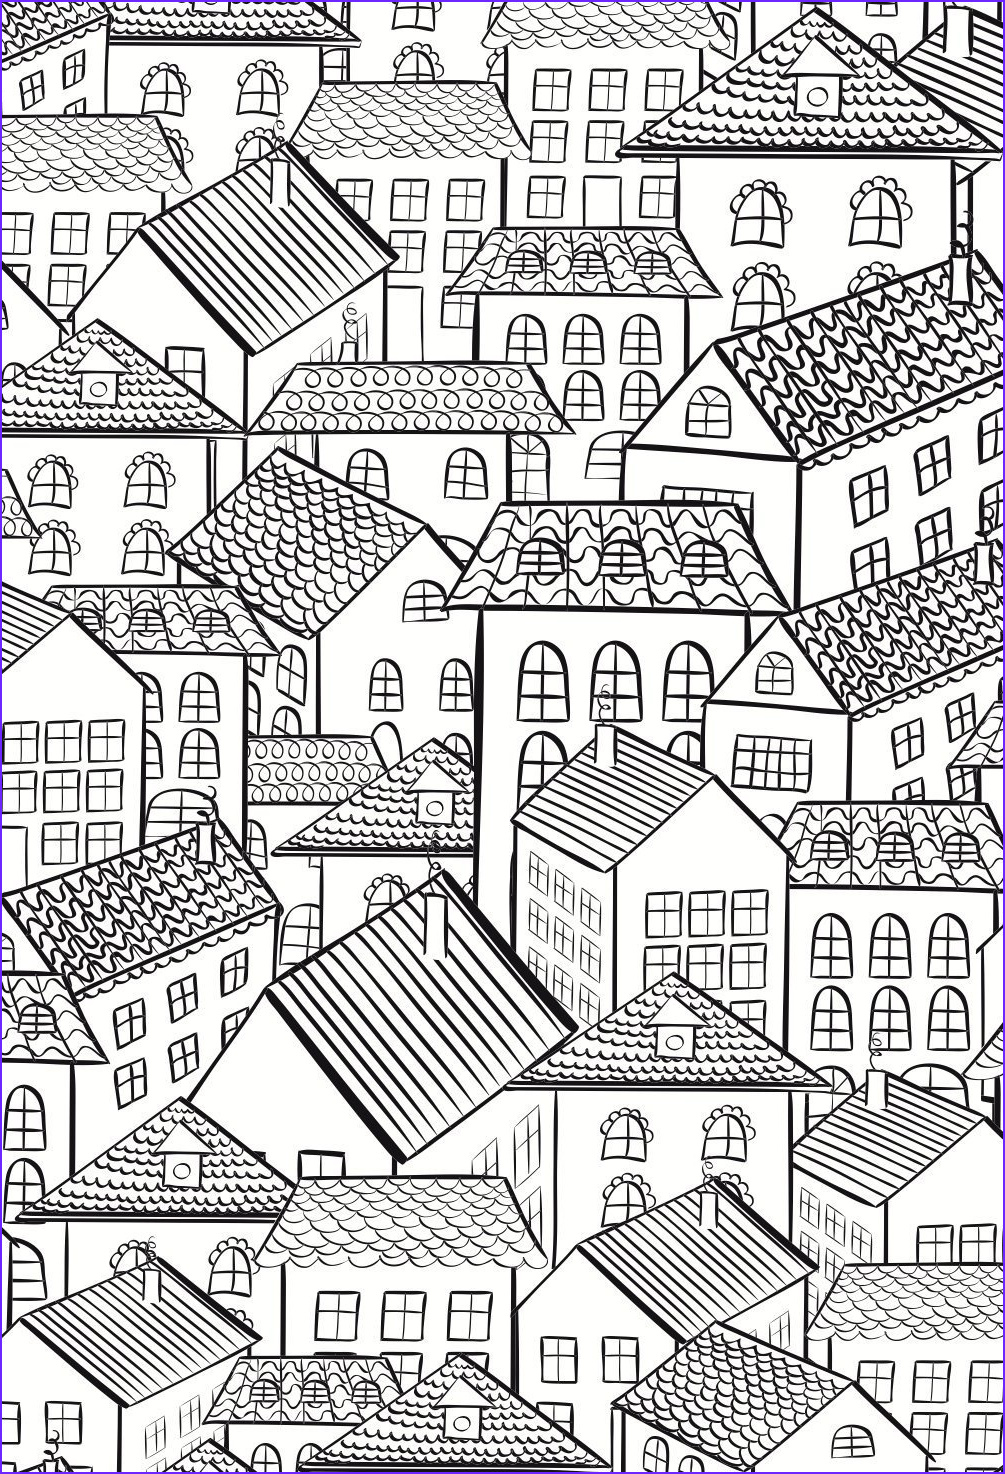 Coloring Sheets For Adults Best Of Gallery Colouring Books For Adults In The Playroom